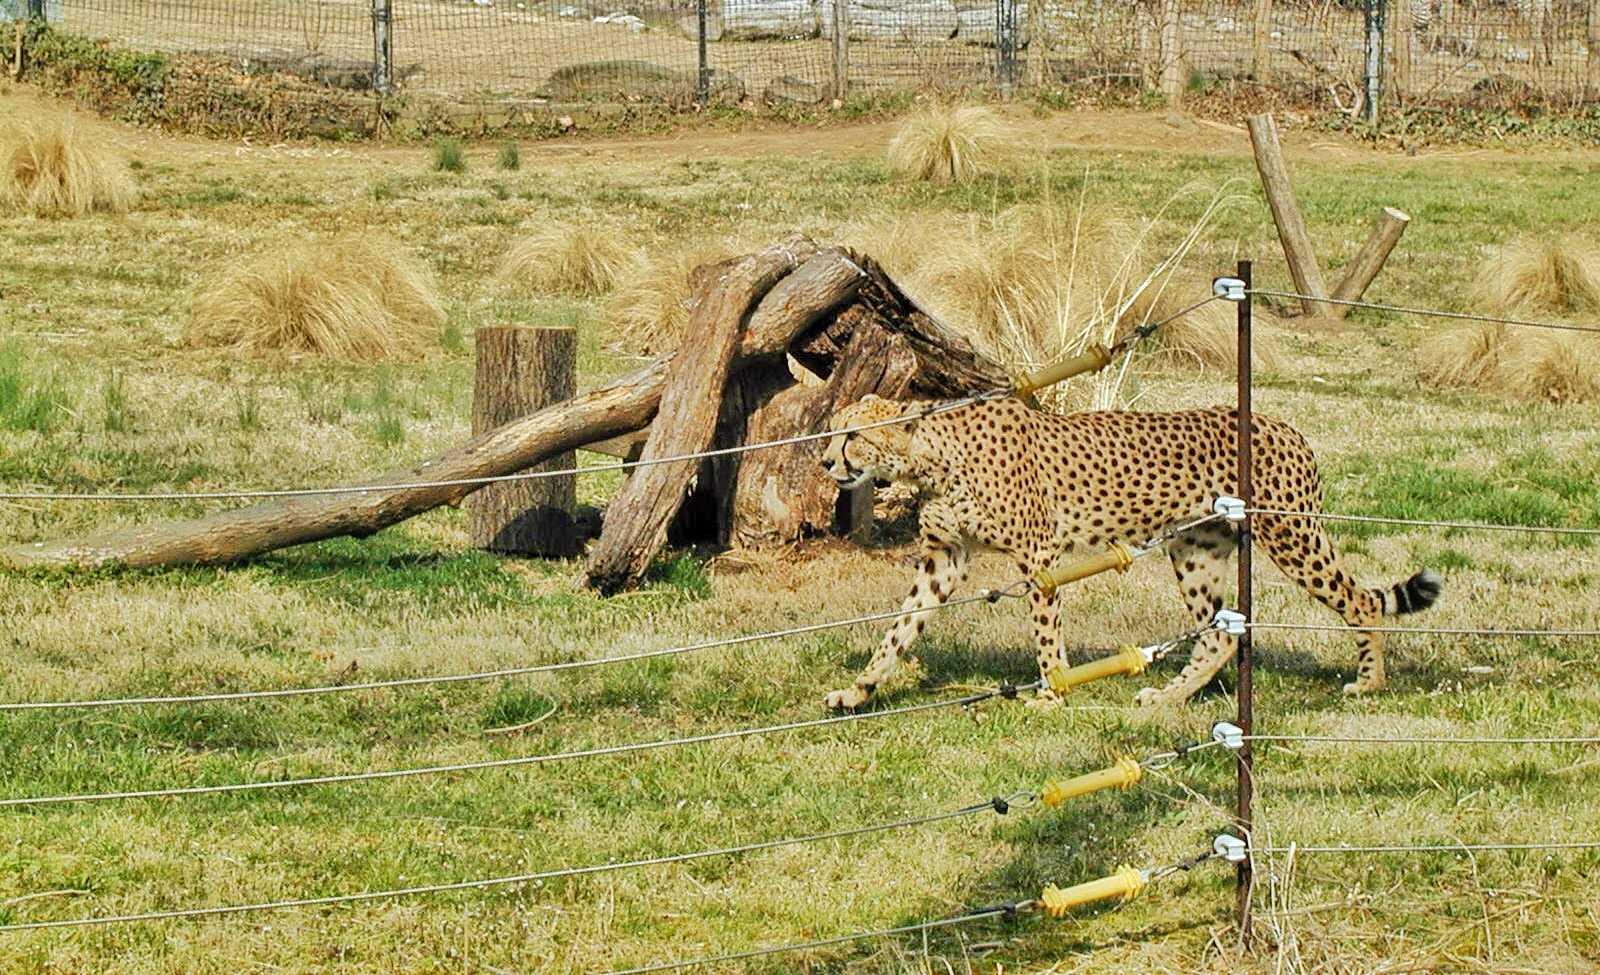 Guide to the Smithsonian: Cheetah at the Cheetah Conservation Center at the National Zoo